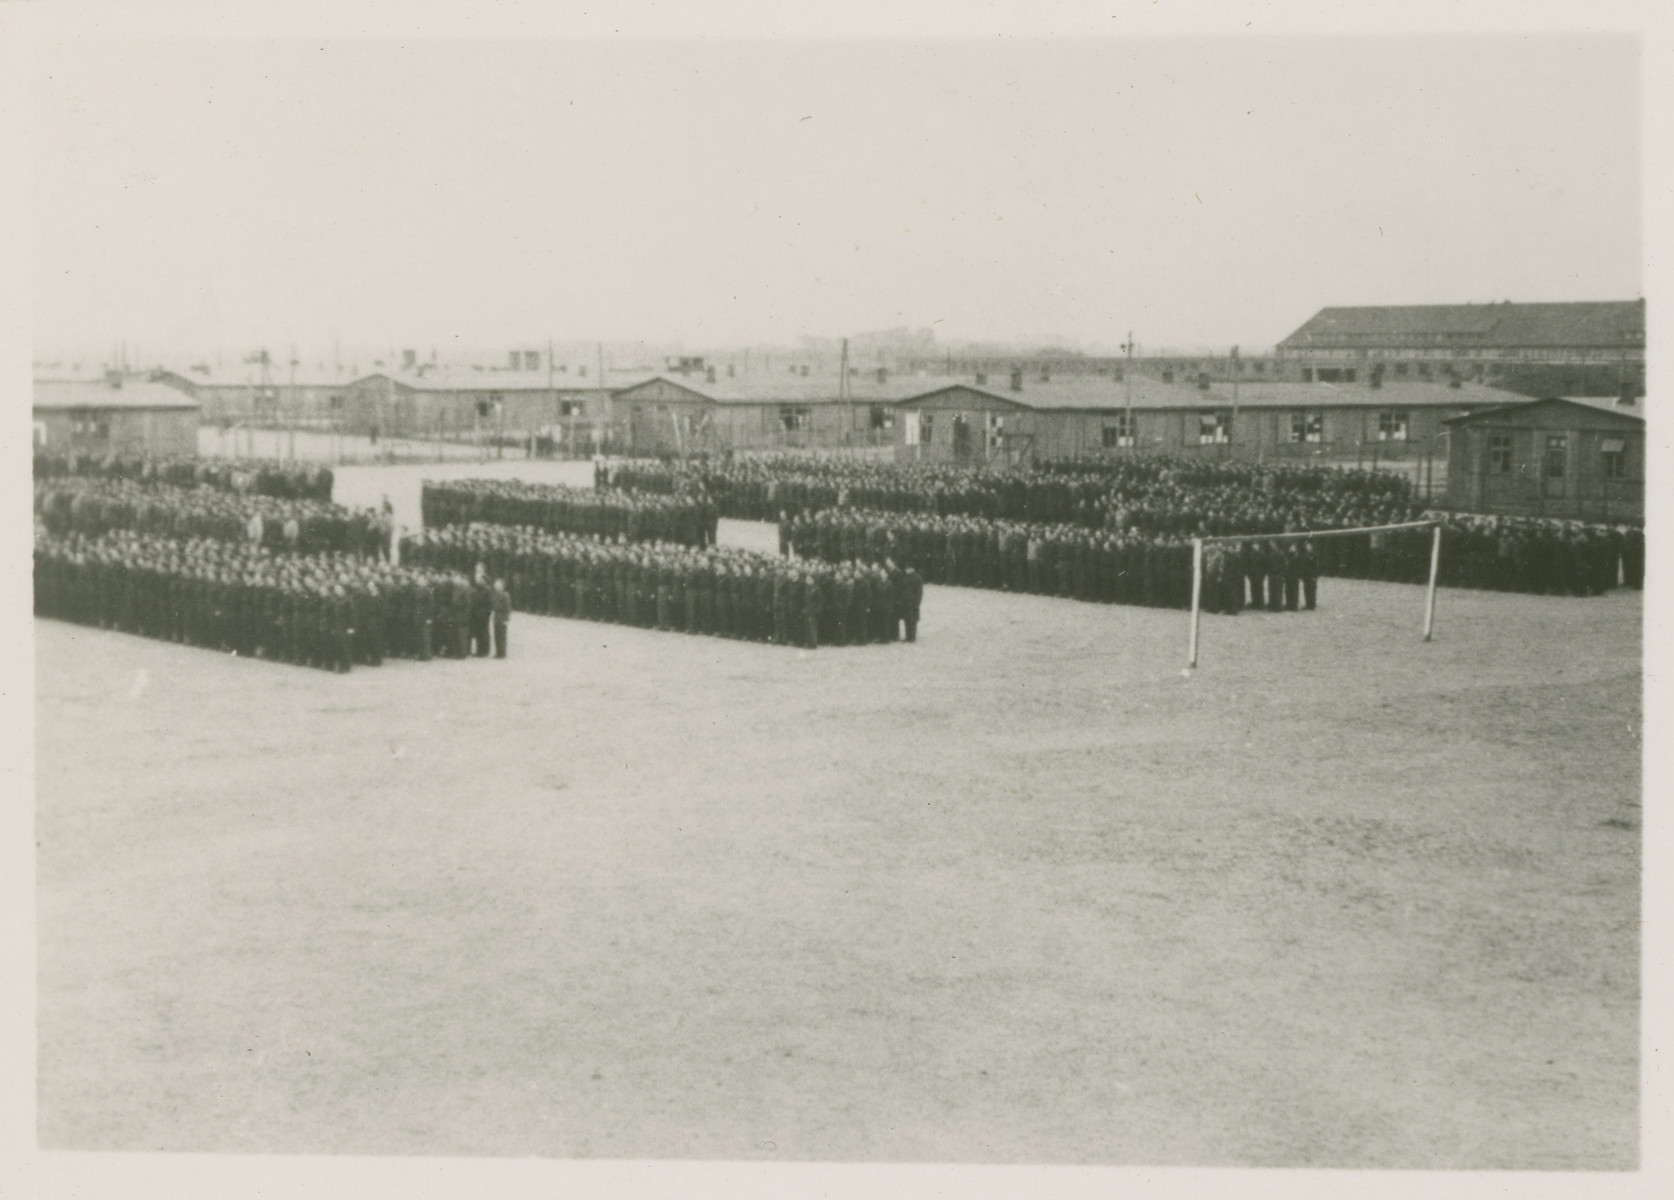 Prisoners line up in formation outside in Stalag Luft 1.